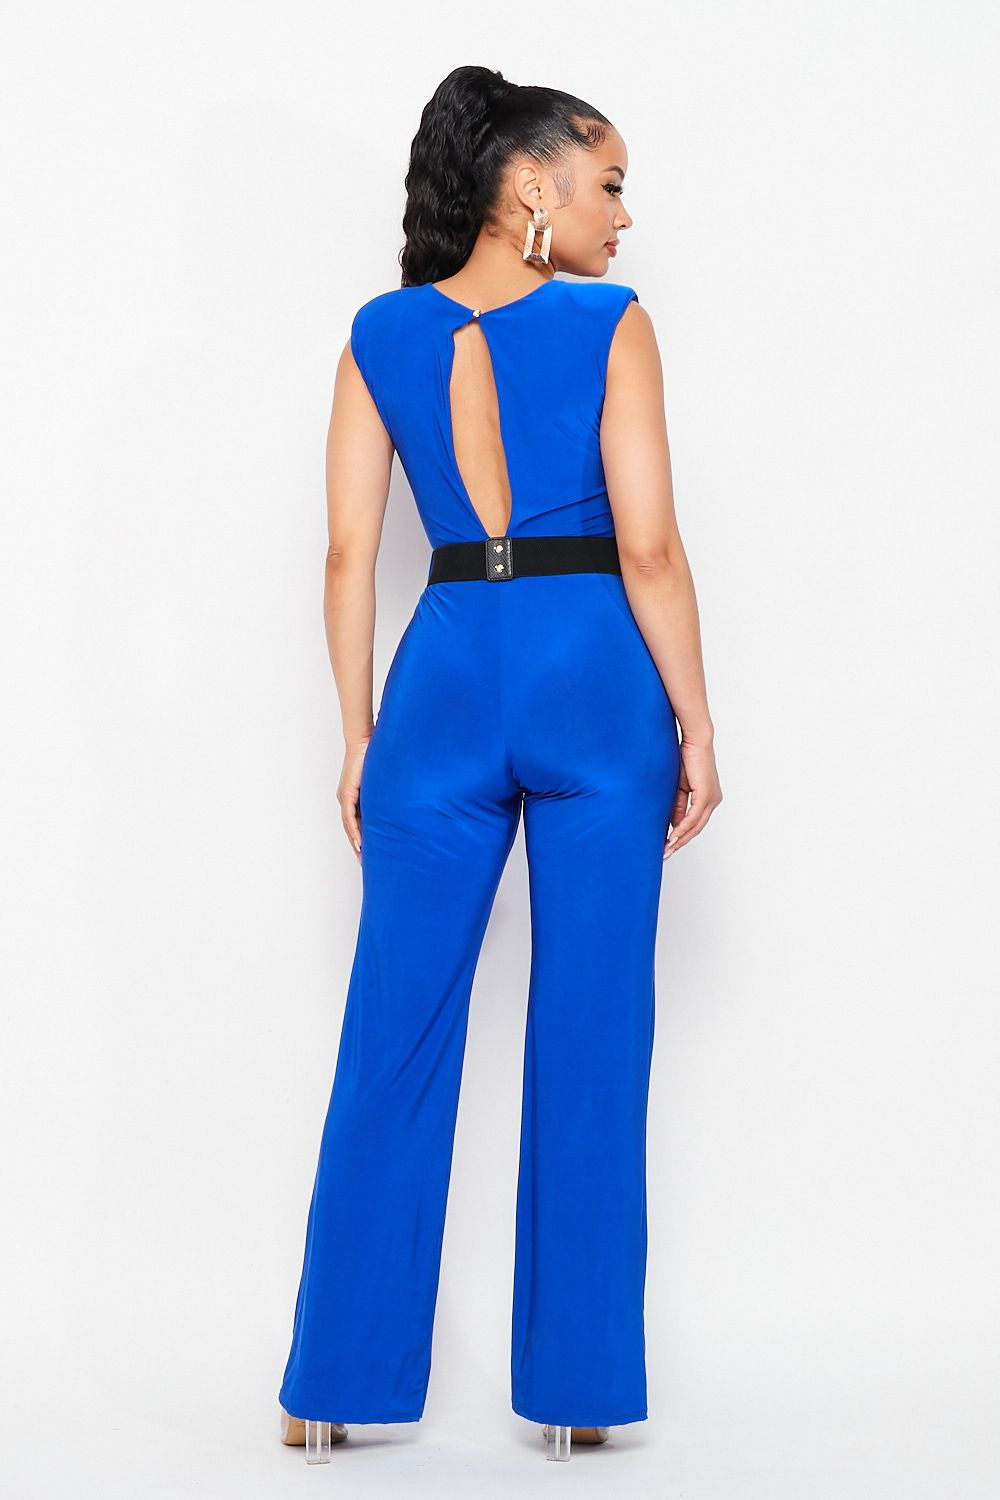 Solid Double Fabric Wide Leg Square Neckline Jumpsuit with Gold Belt in Royal Blue - Fashion House USA